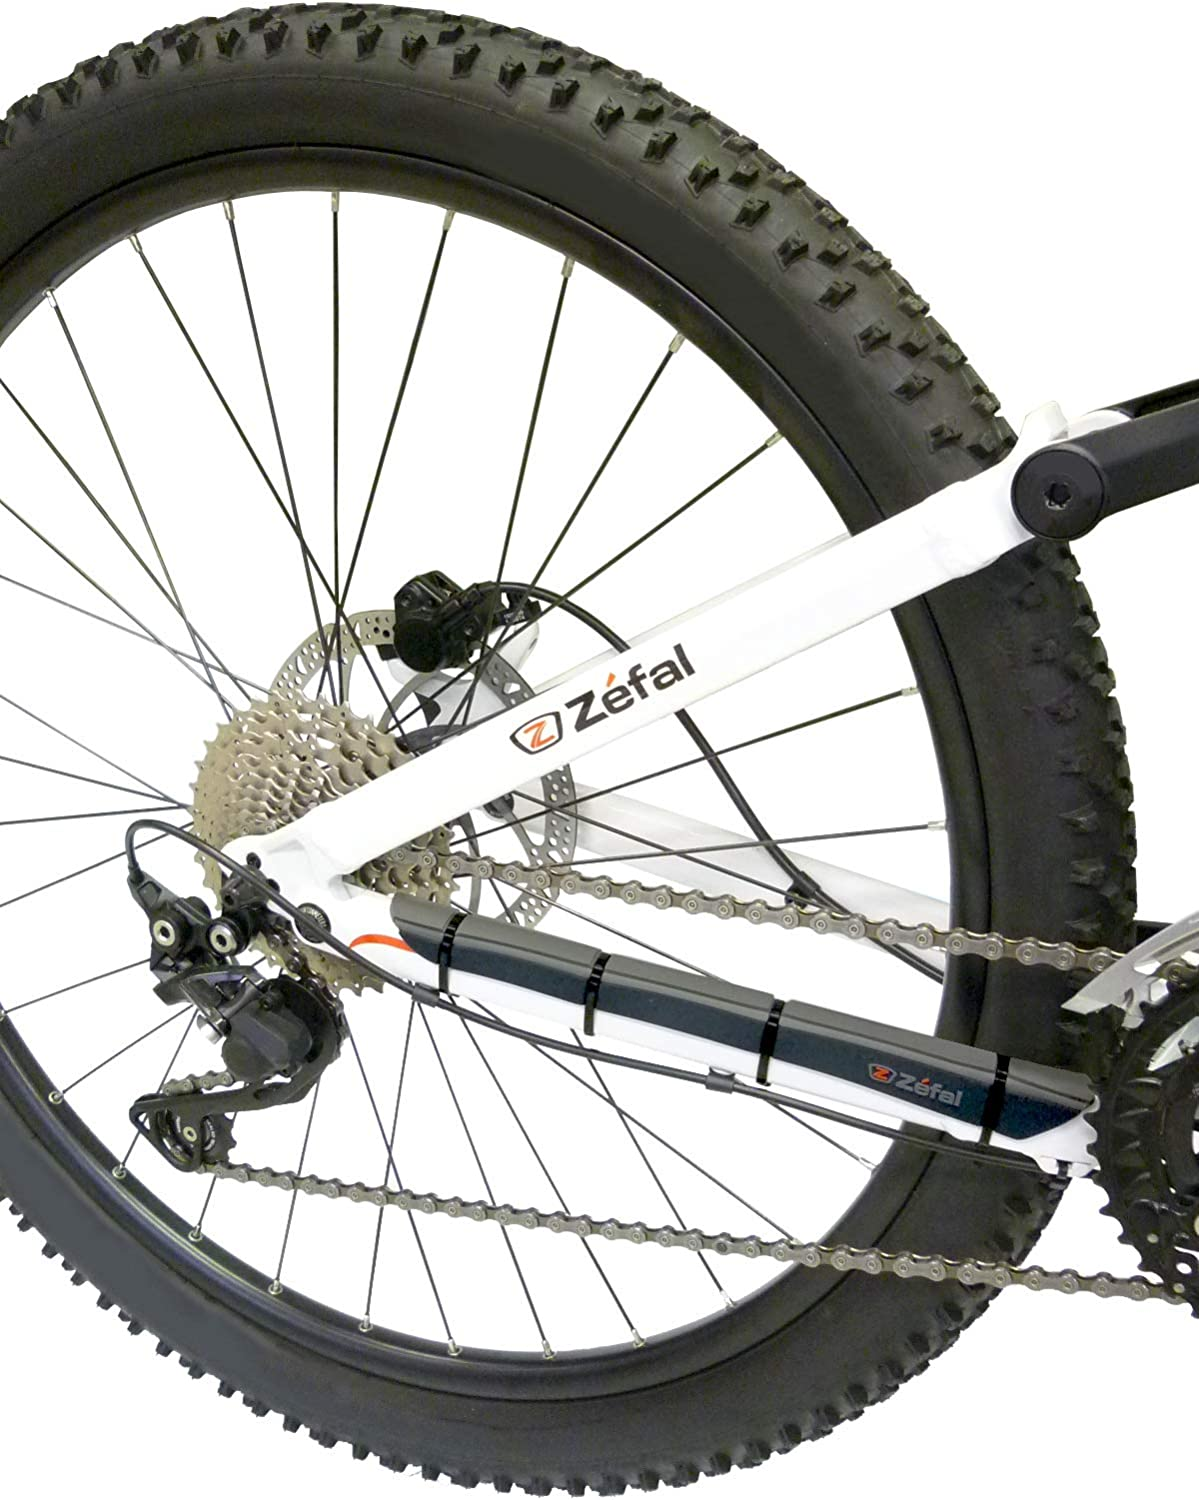 ZEFAL ARMOR BLACK CHAINSTAY FRAME PROTECTOR GUARD